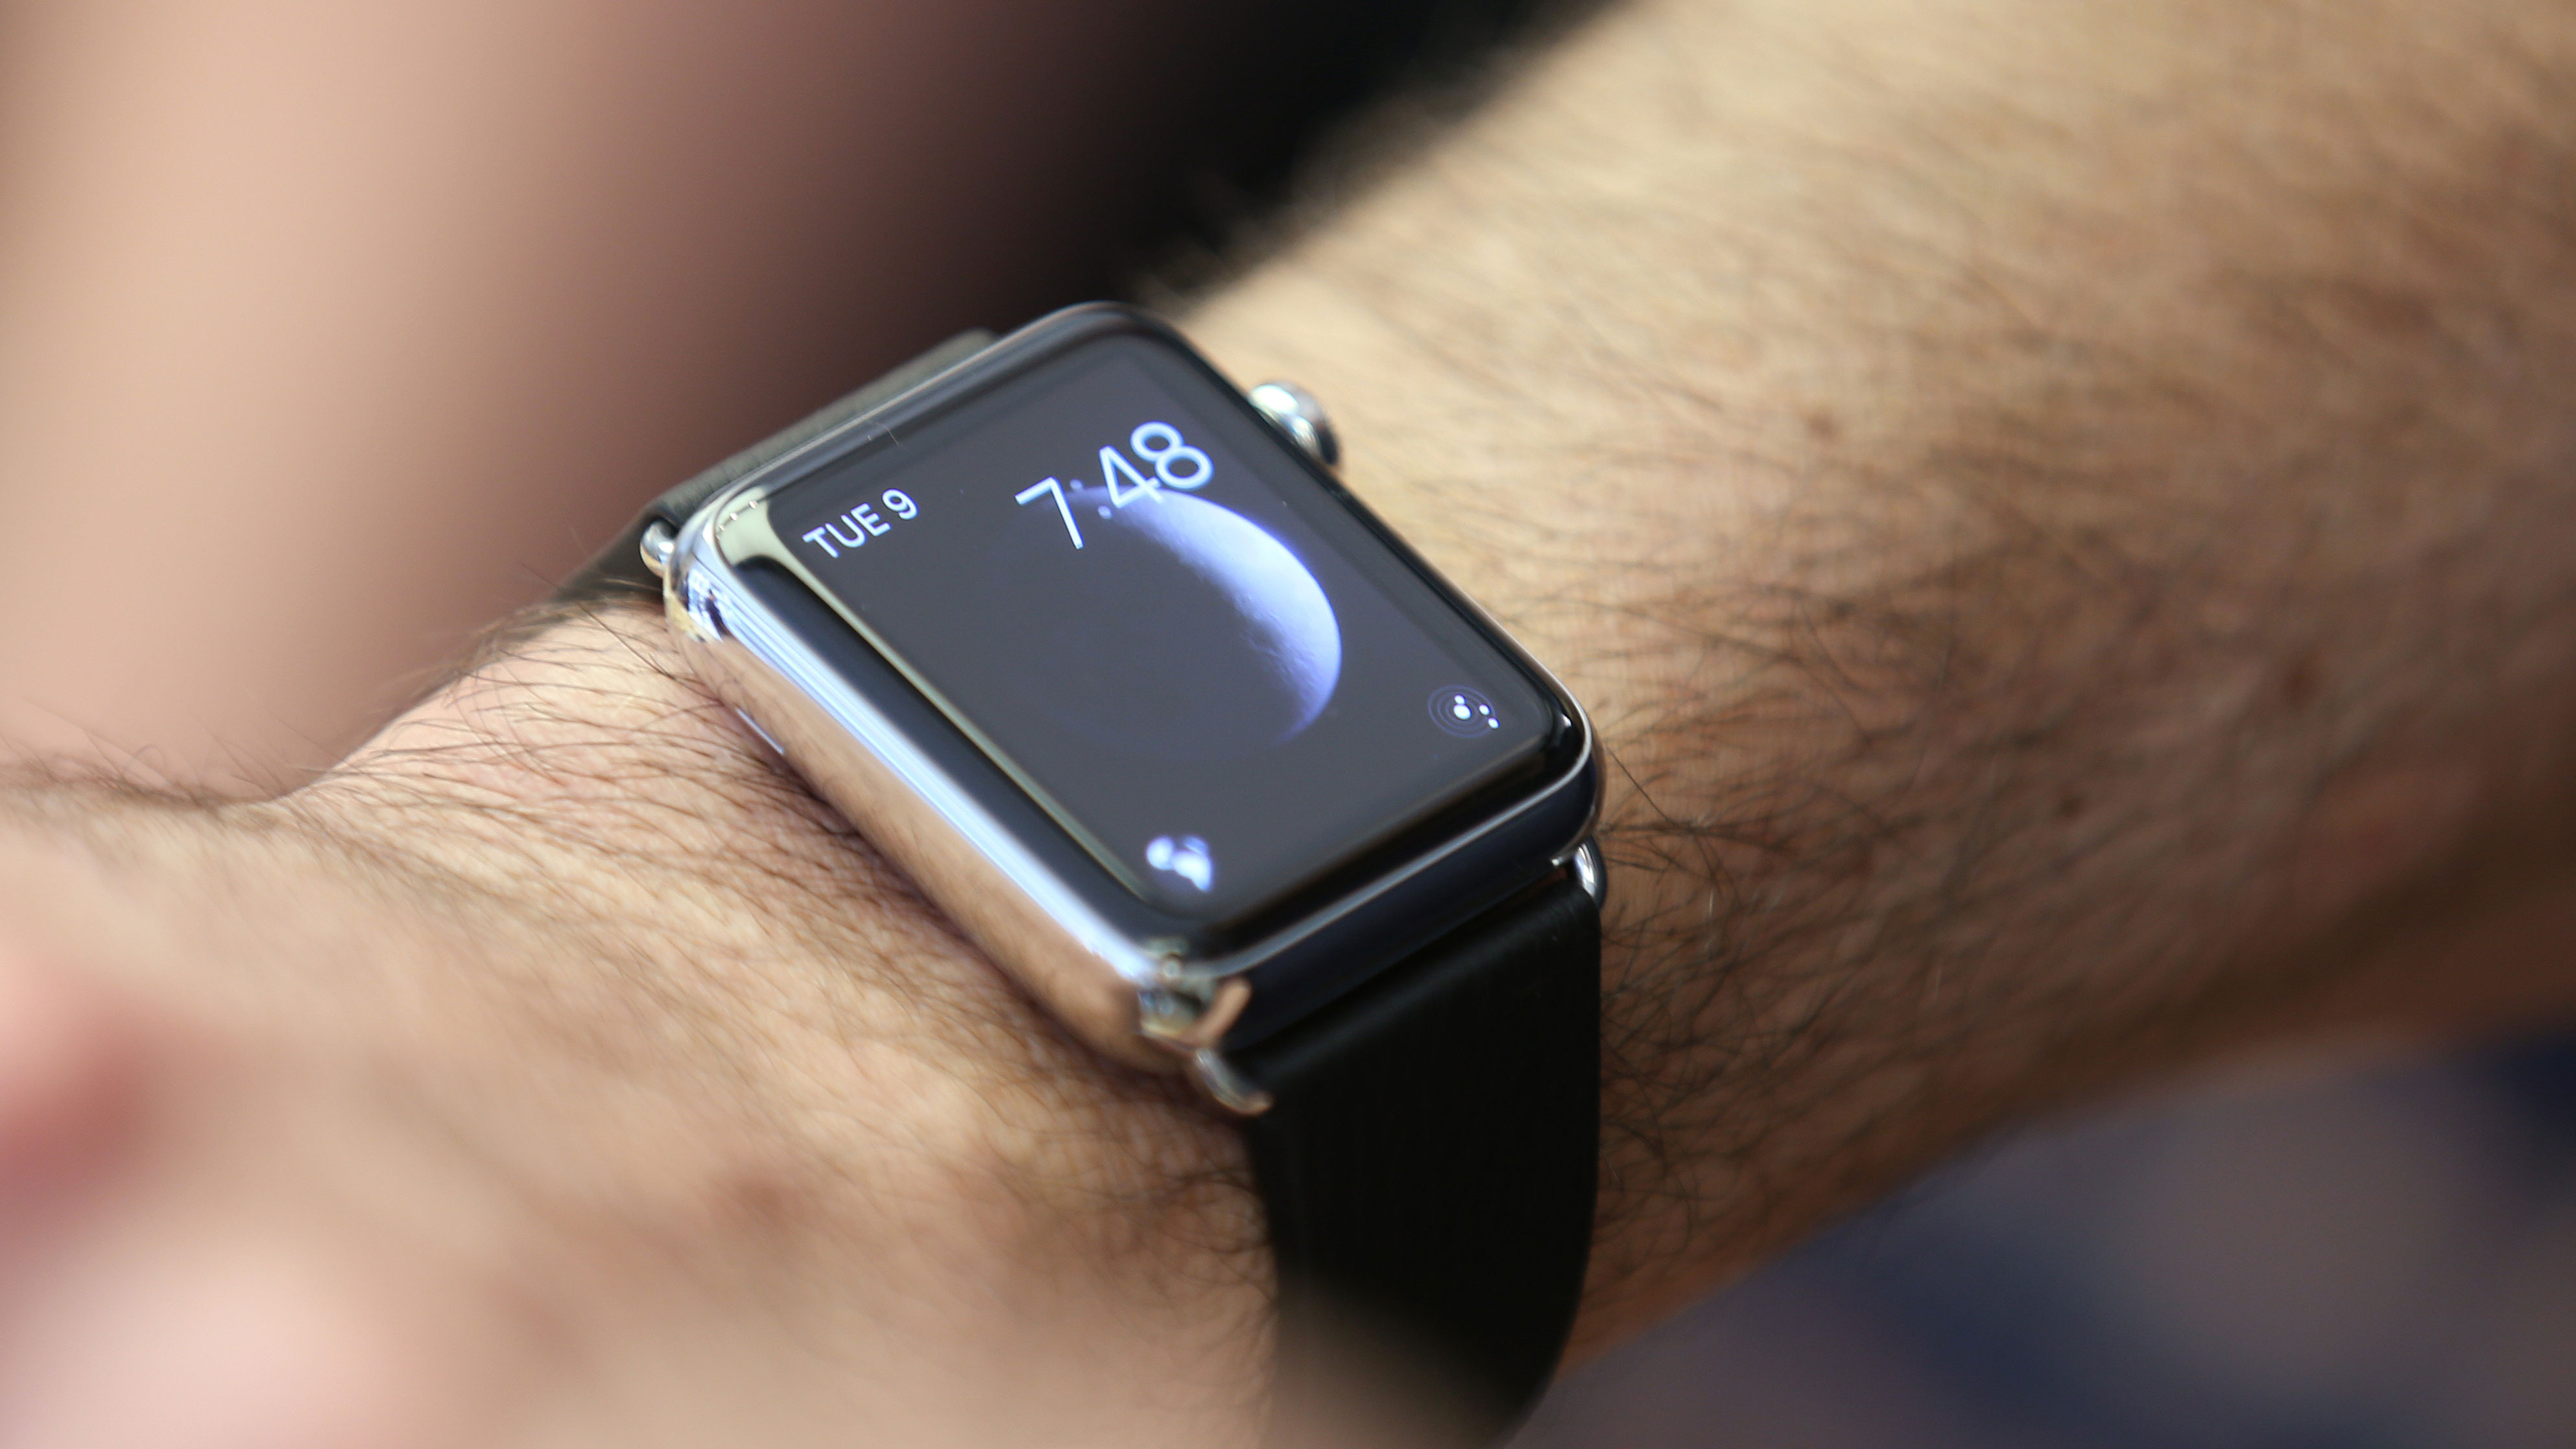 A customers wears an Apple Watch as the public have its first chance to see, touch and pre-order the watch in Sydney, Friday, April 10, 2015. Prices start at $349, but can go as high as $17,000 for a luxury edition in gold. (AP Photo/Rick Rycroft)